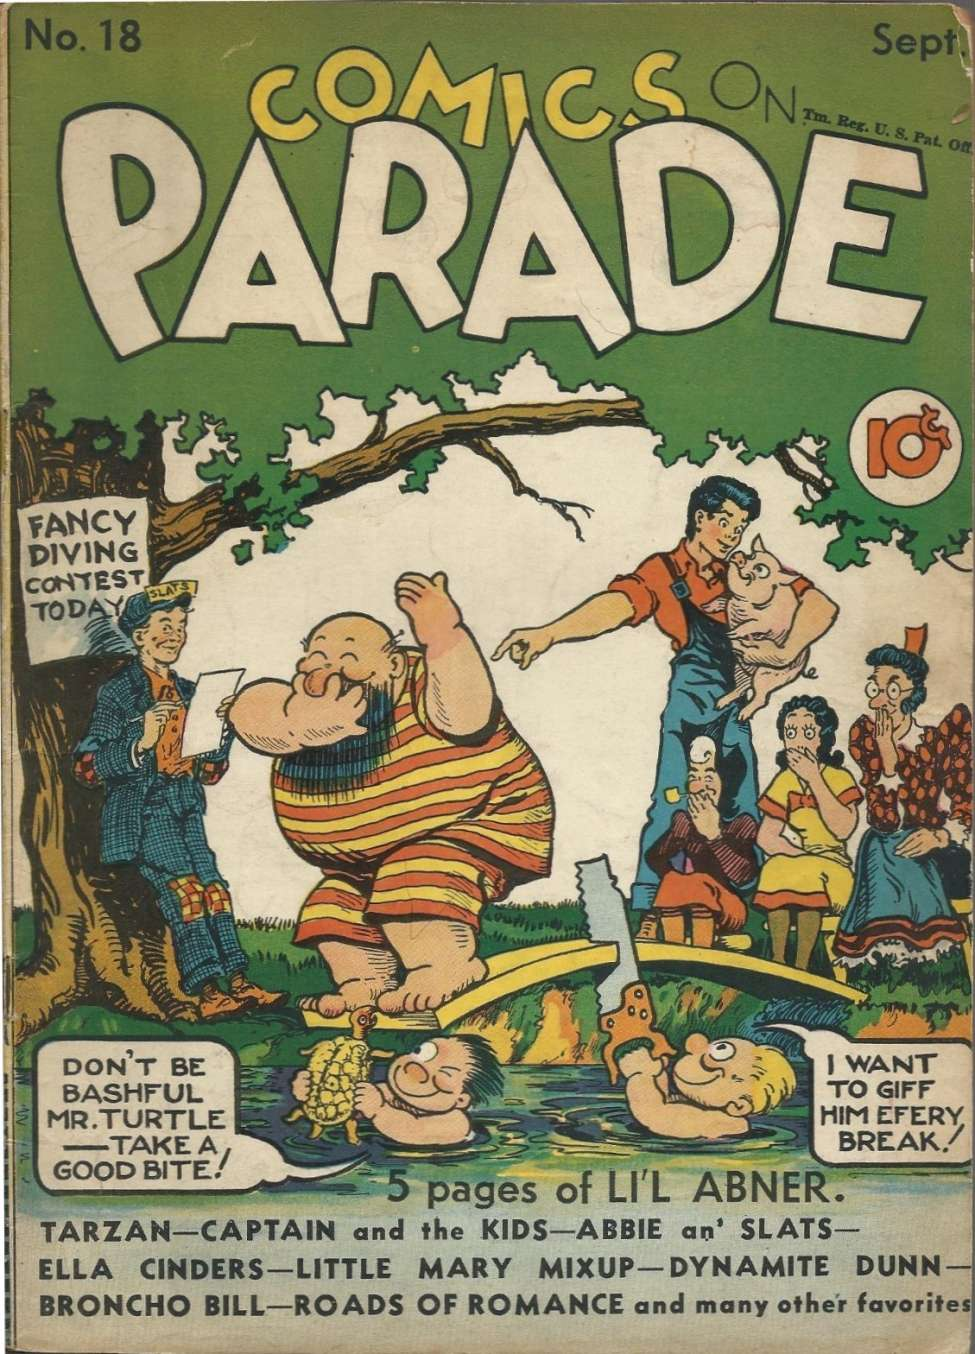 Comic Book Cover For Comics on Parade 018